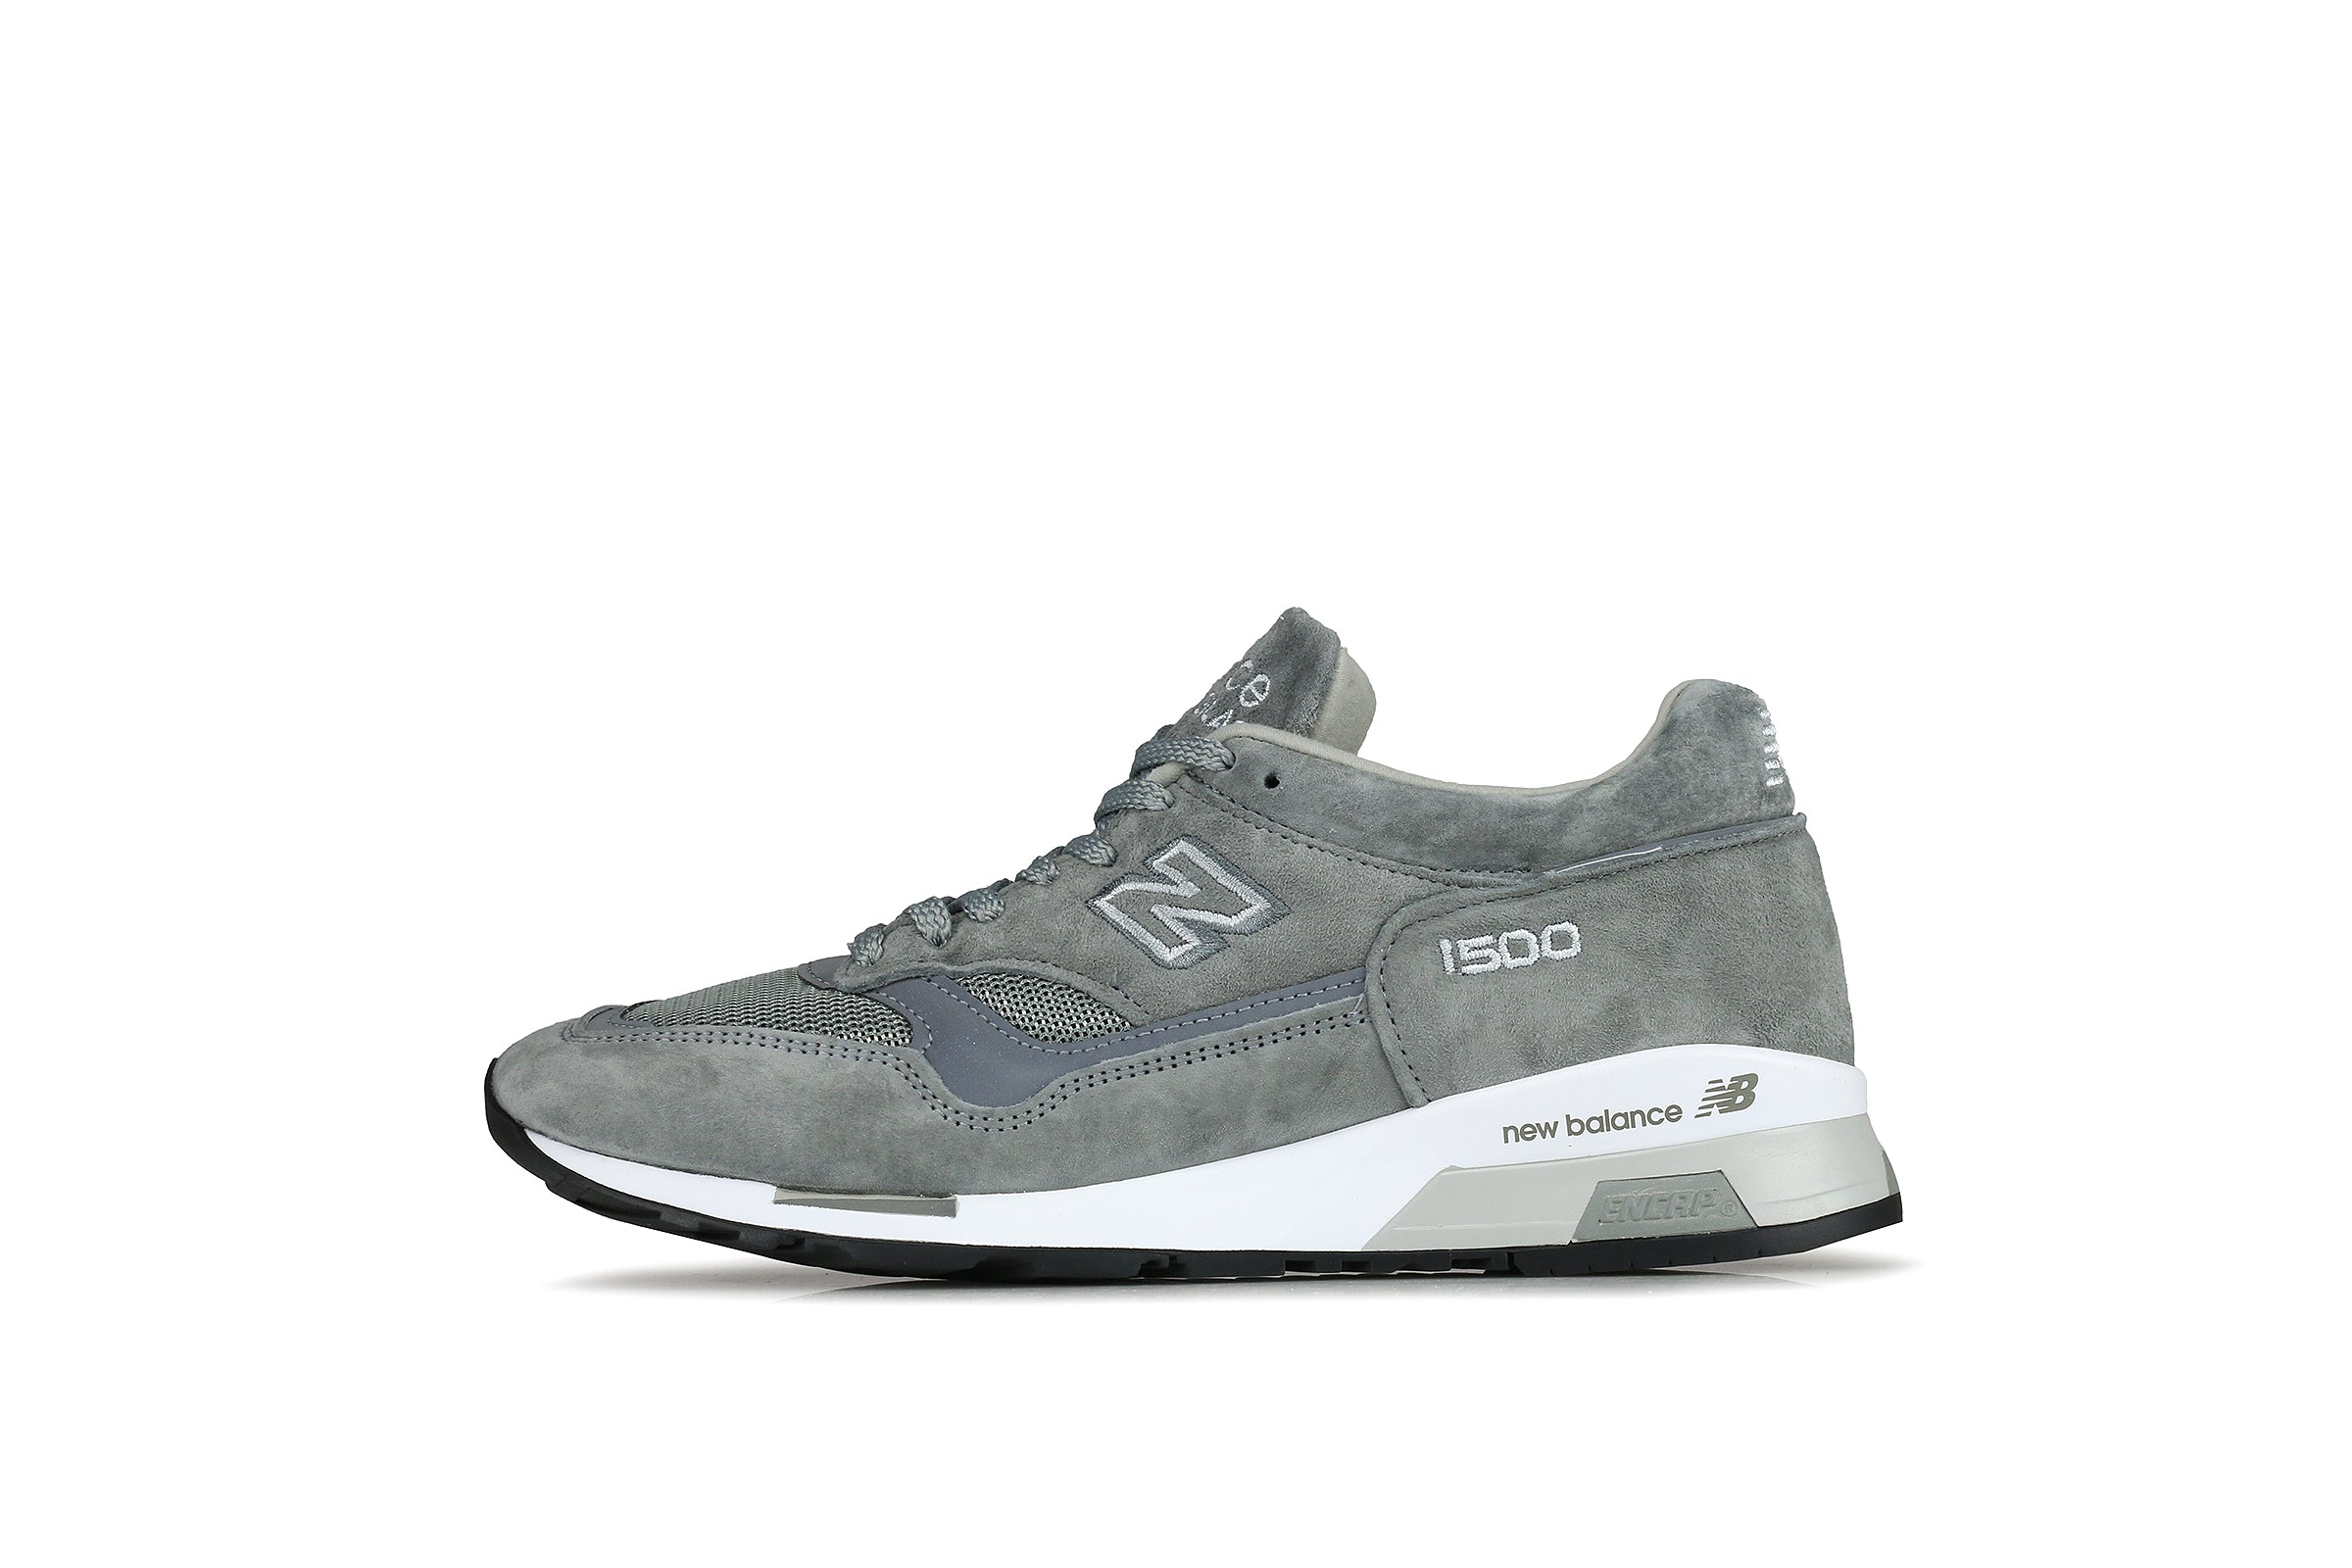 f1507b2564247 New Balance Sneakers | New Balance Apparel & Trainers | Hanon